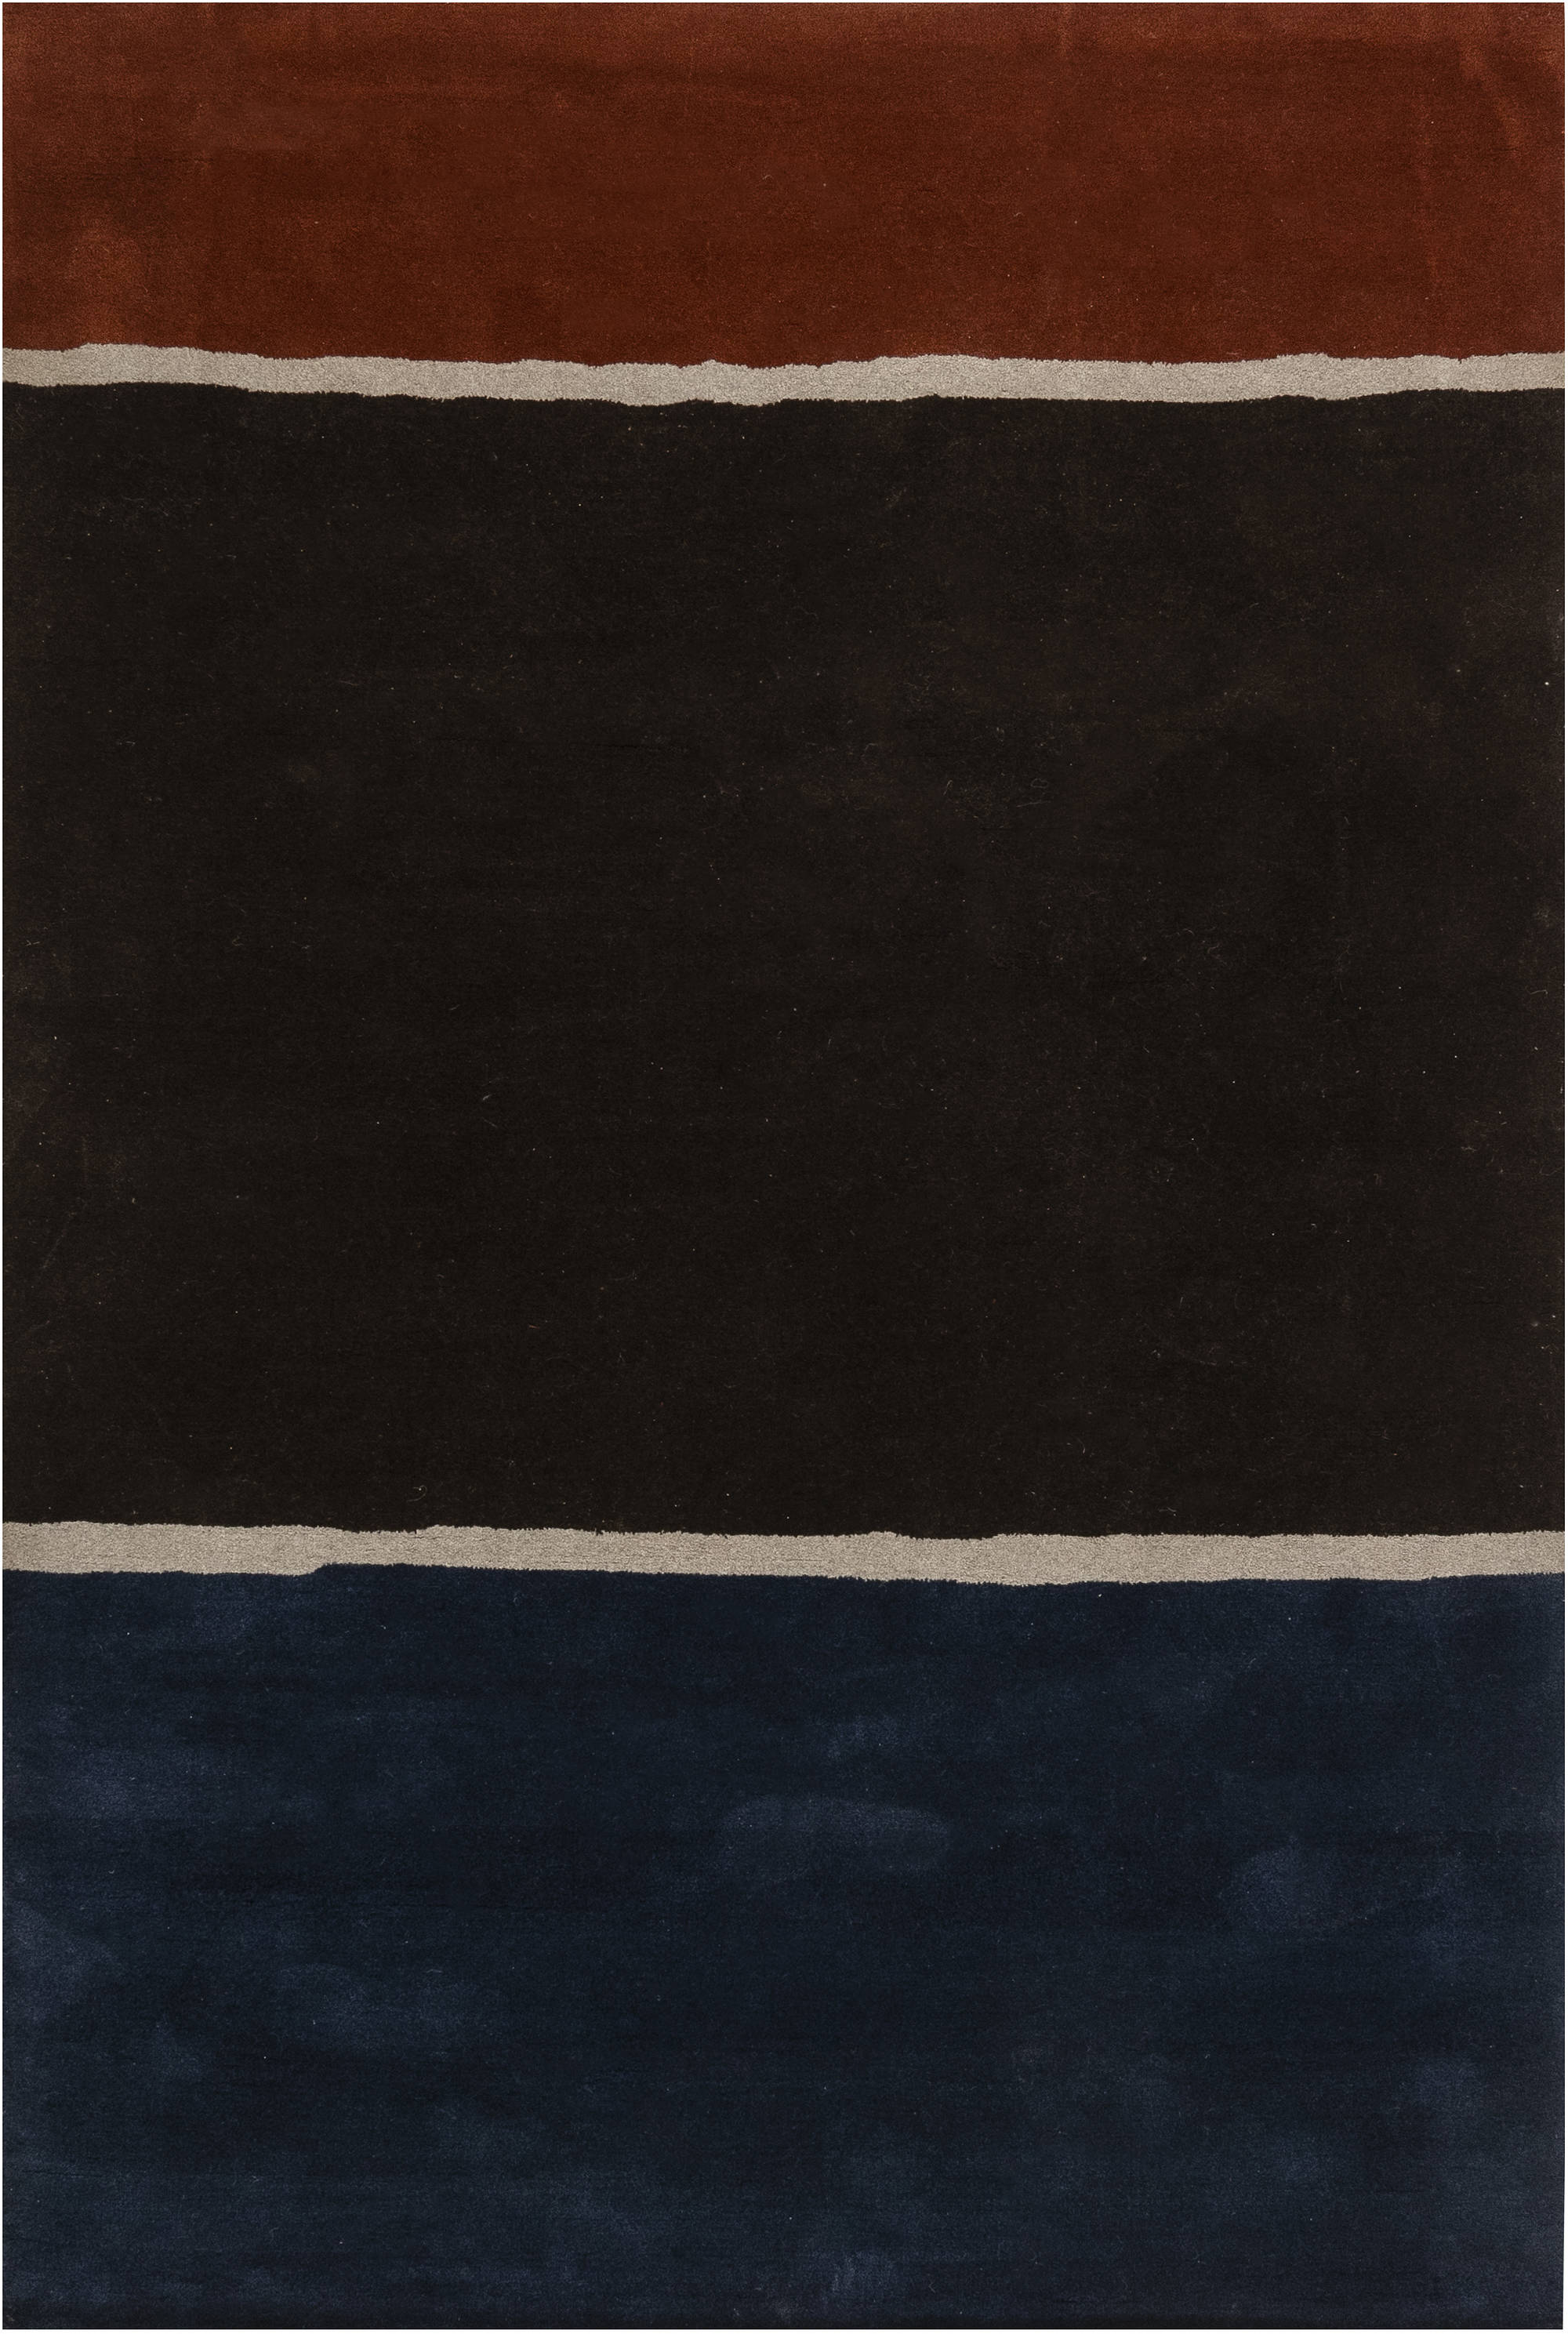 Contemporary Hand-Tufted Rug by Diana Sawicki N11943